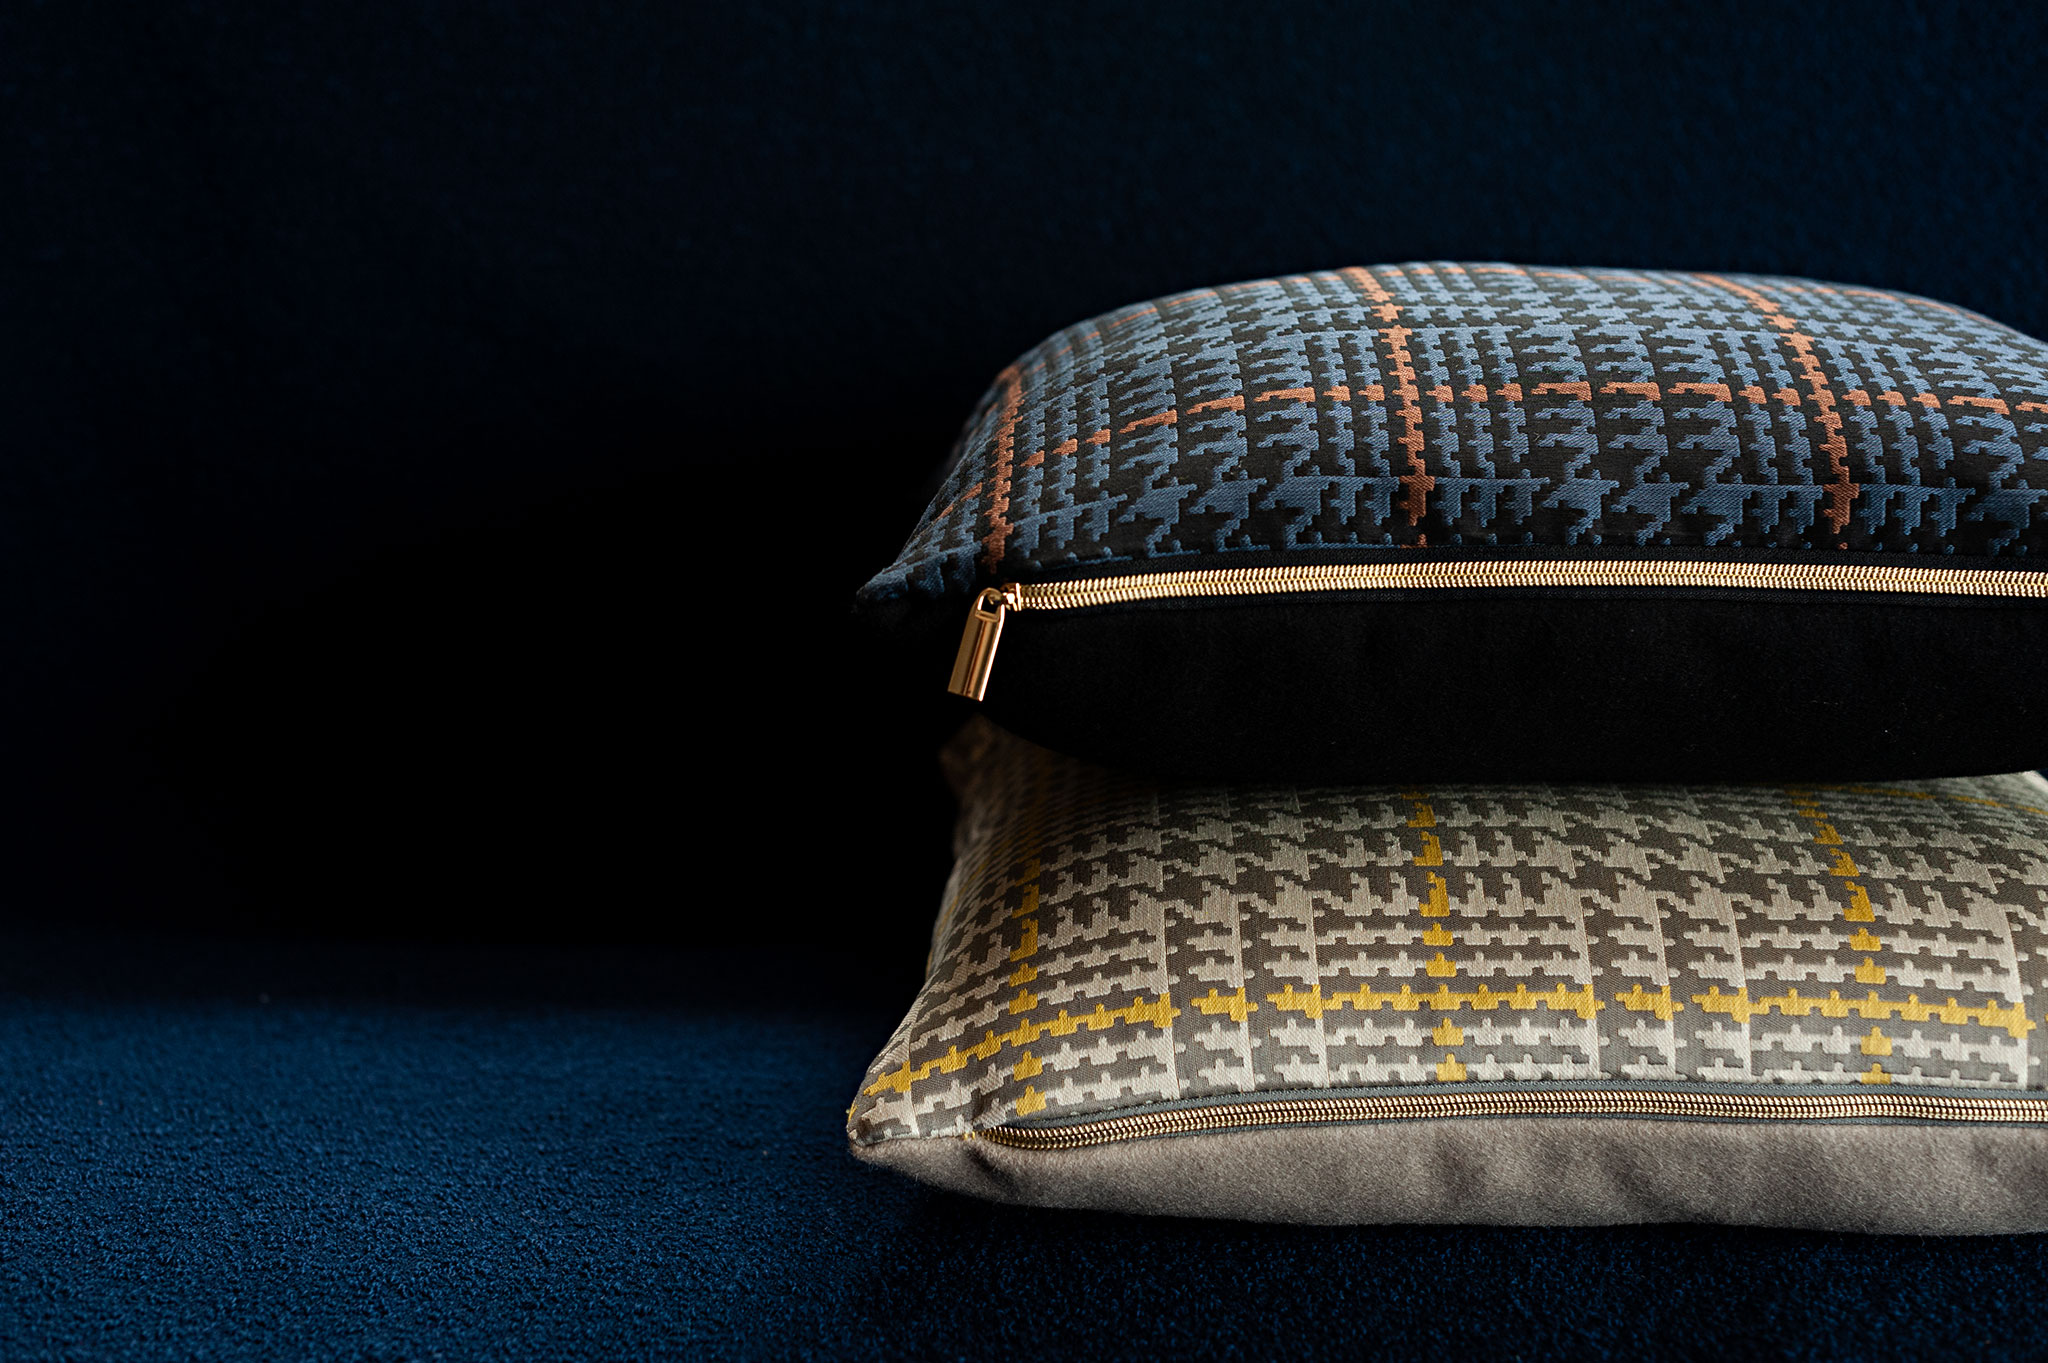 Paul-Smith-cushions-double-stackfullLR.jpg